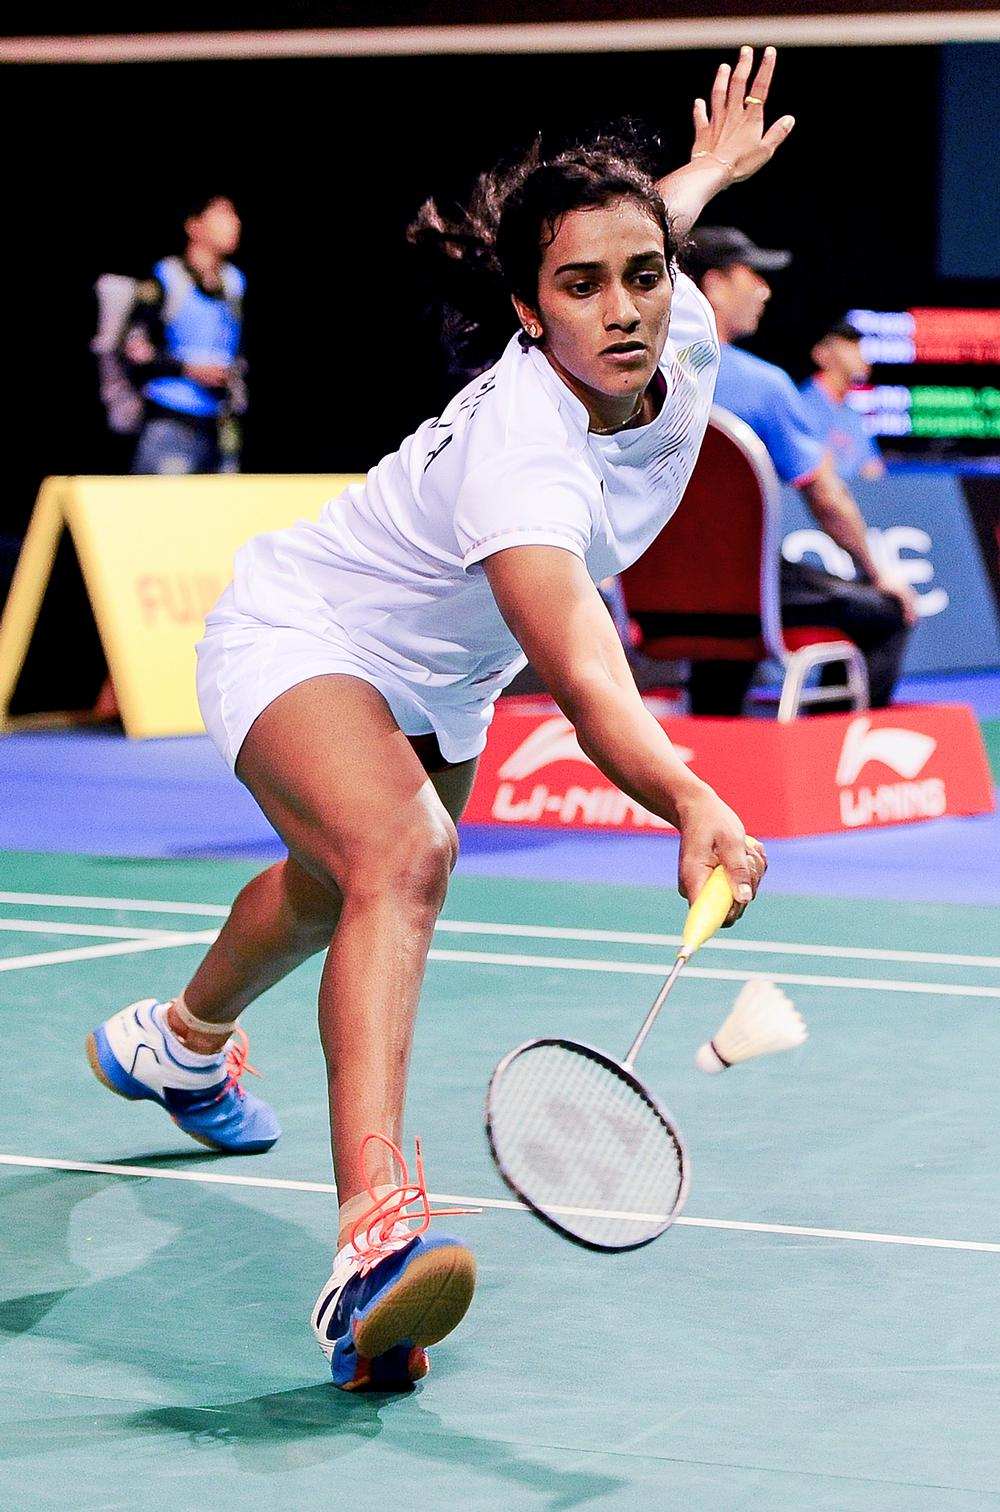 Badminton is often described as the second most played sport in India after cricket / © shutterstock/Kairosnapshots